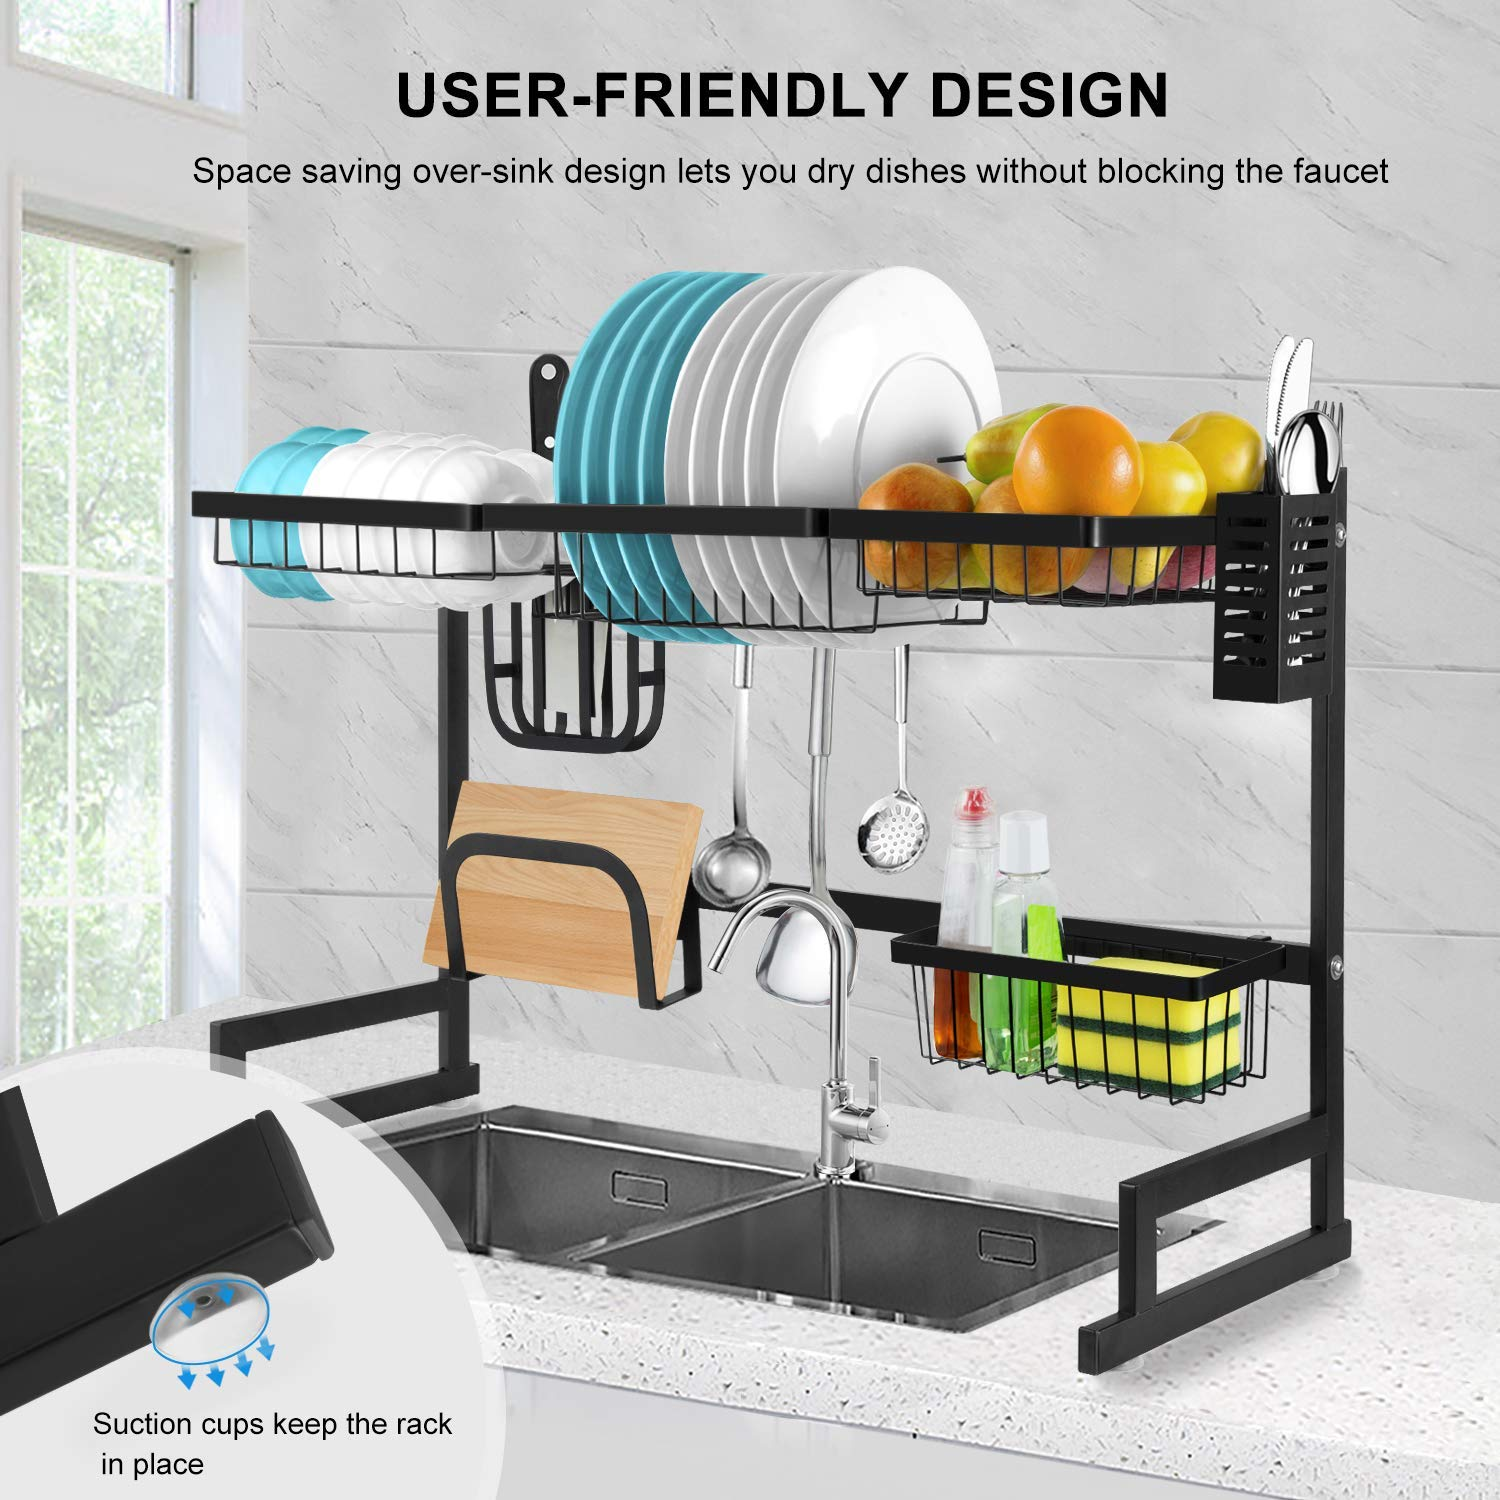 Dish Drying Shelf/Rack from HabiLife